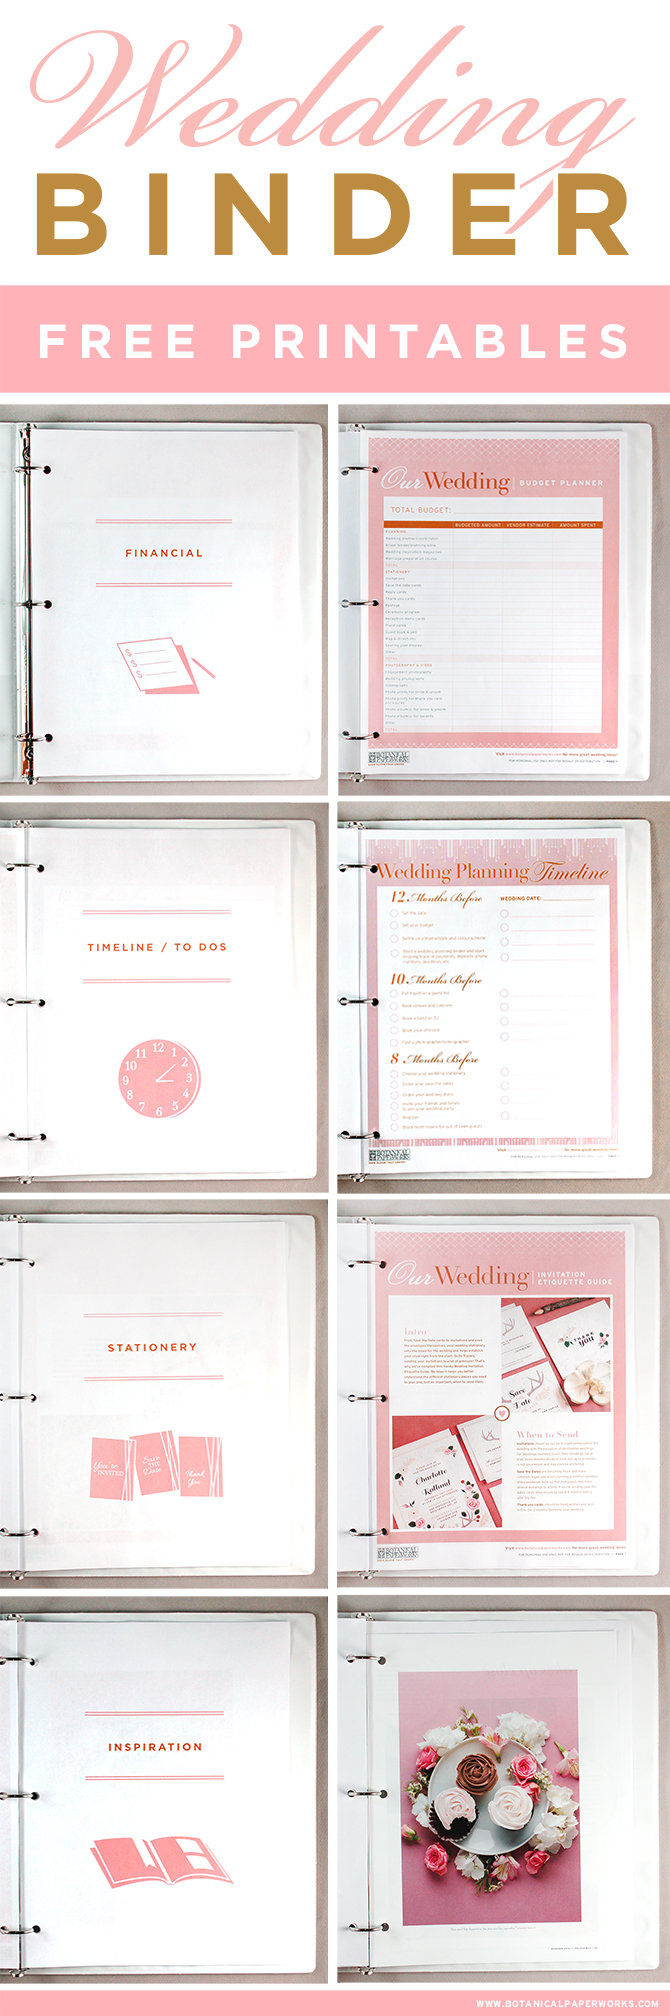 free printables} Wedding Planning Binder | Blog | Botanical PaperWorks